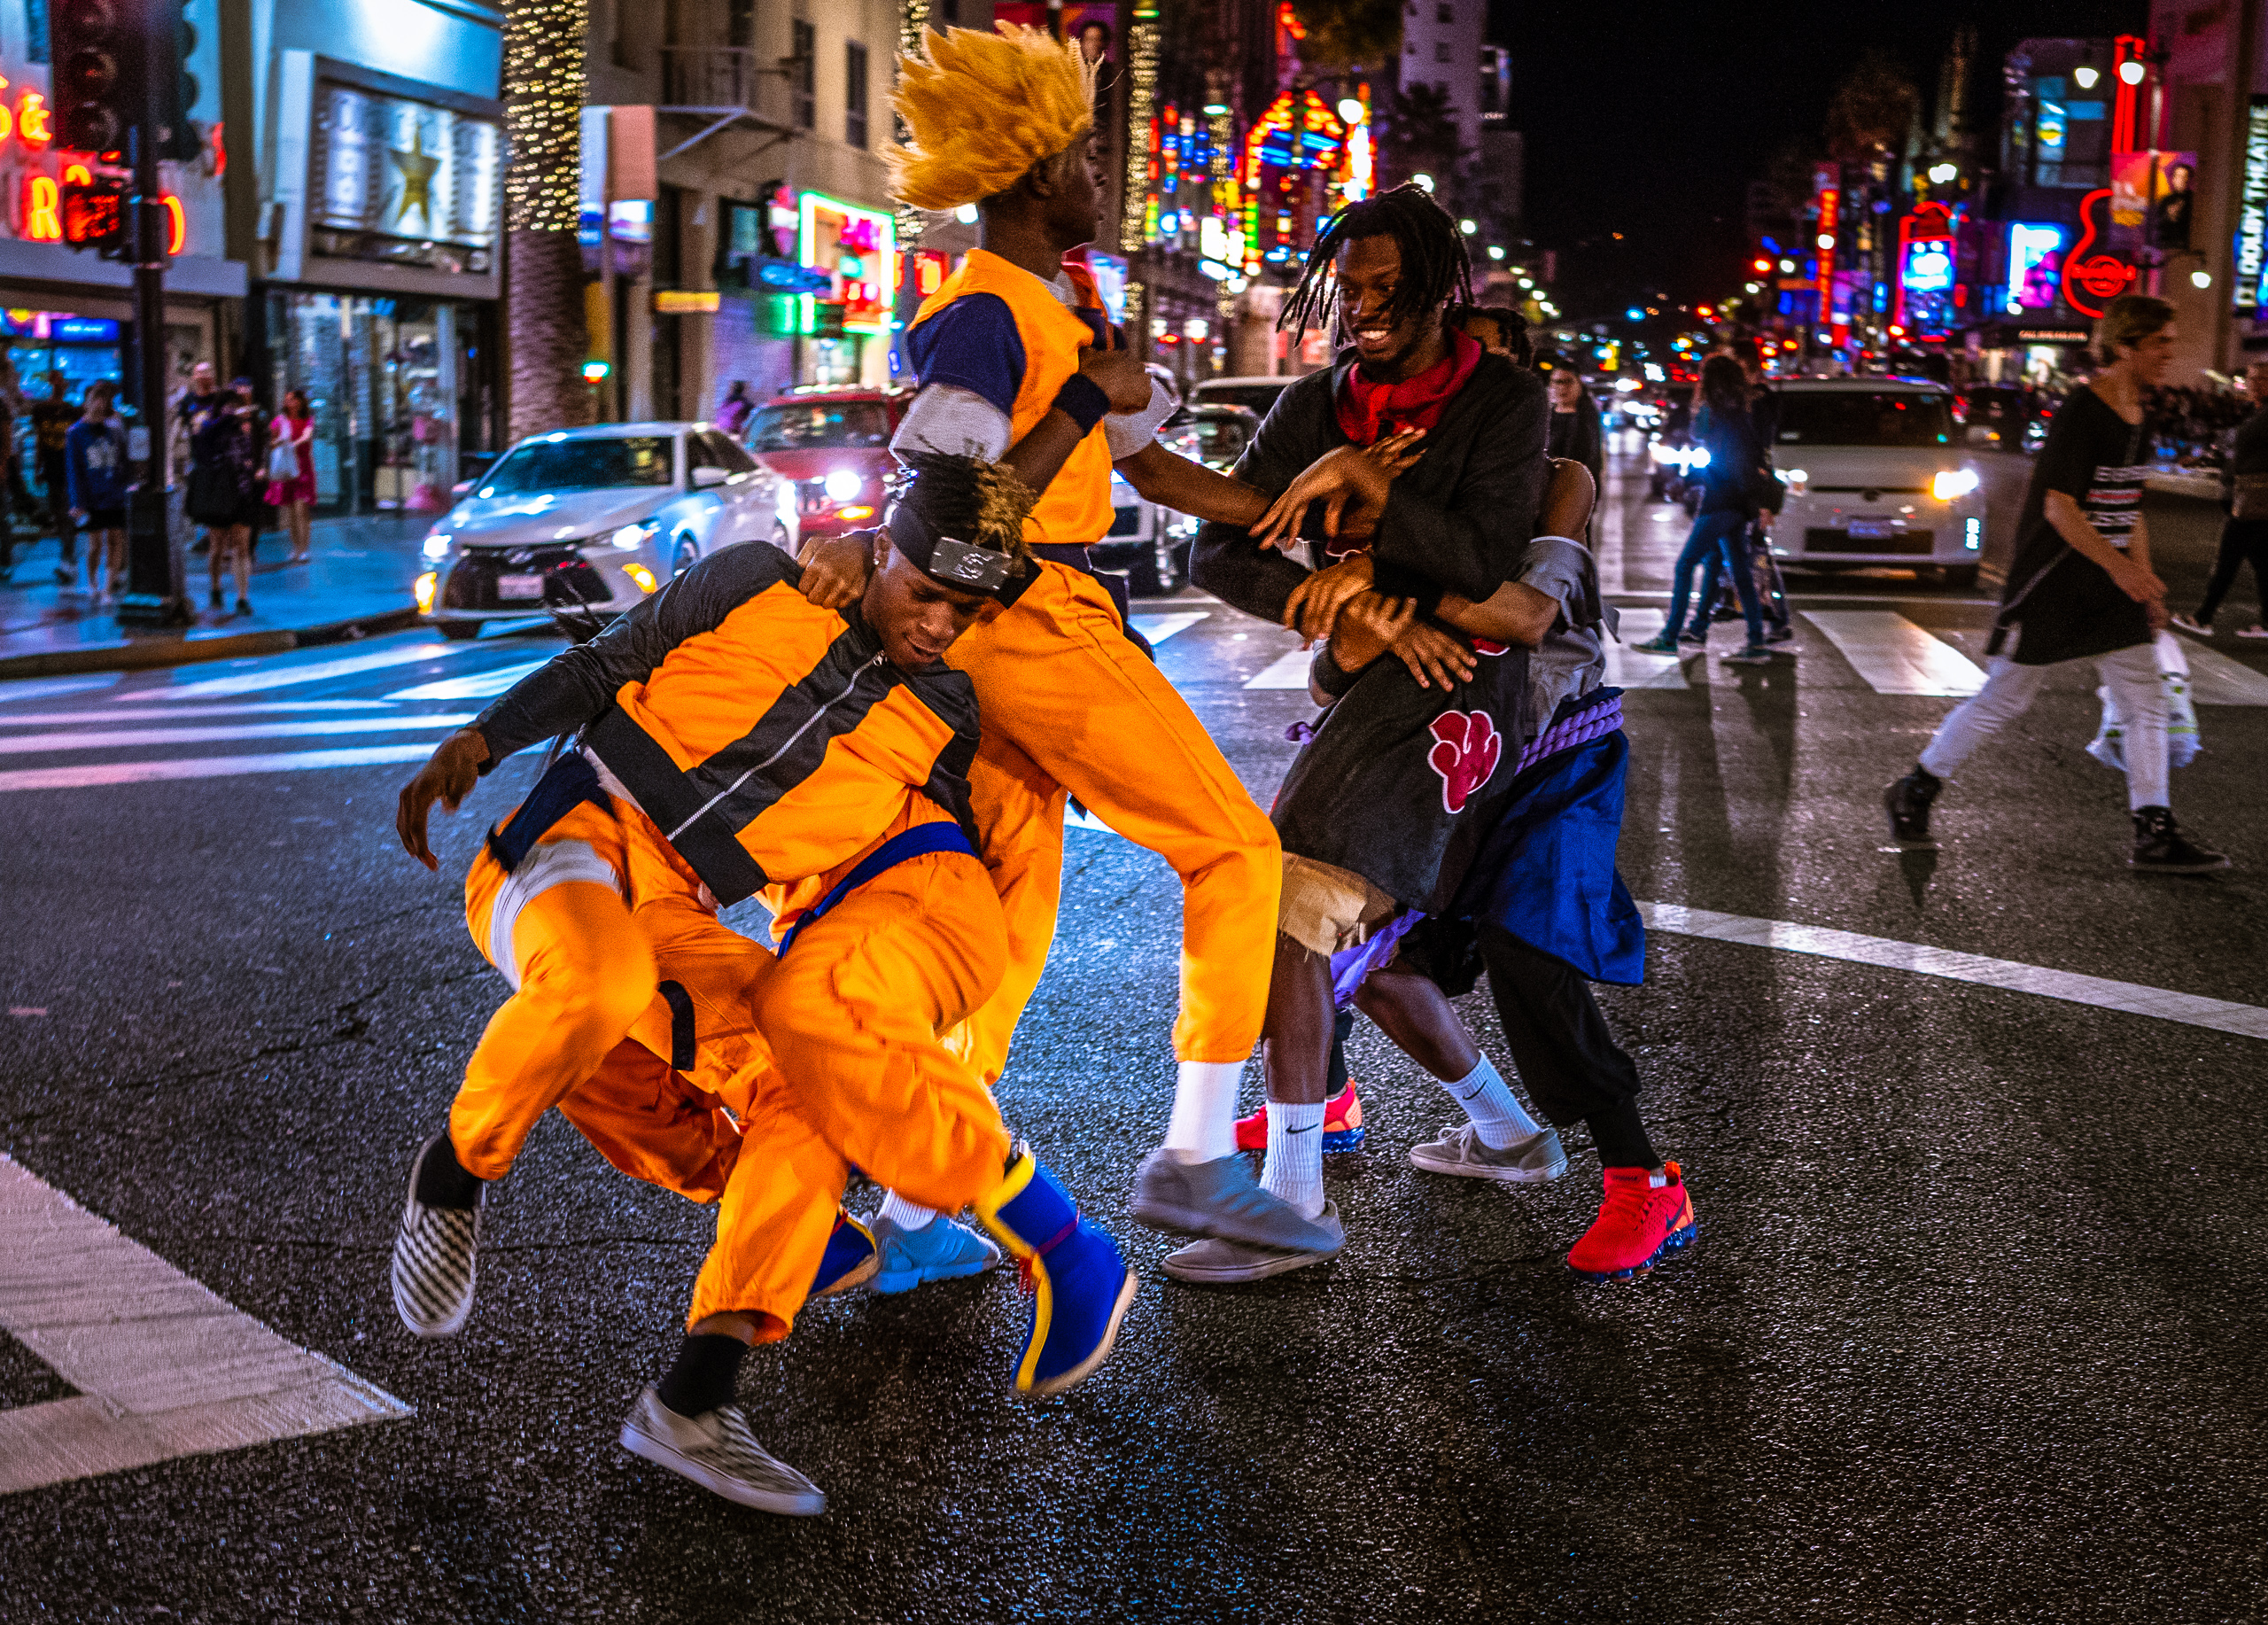 a half dozen men in bright orange costumes and huge hair wigs put on a mock fight or battle in the middle of the 4-way crossing at Hollywood & Highland in Hollywood, California